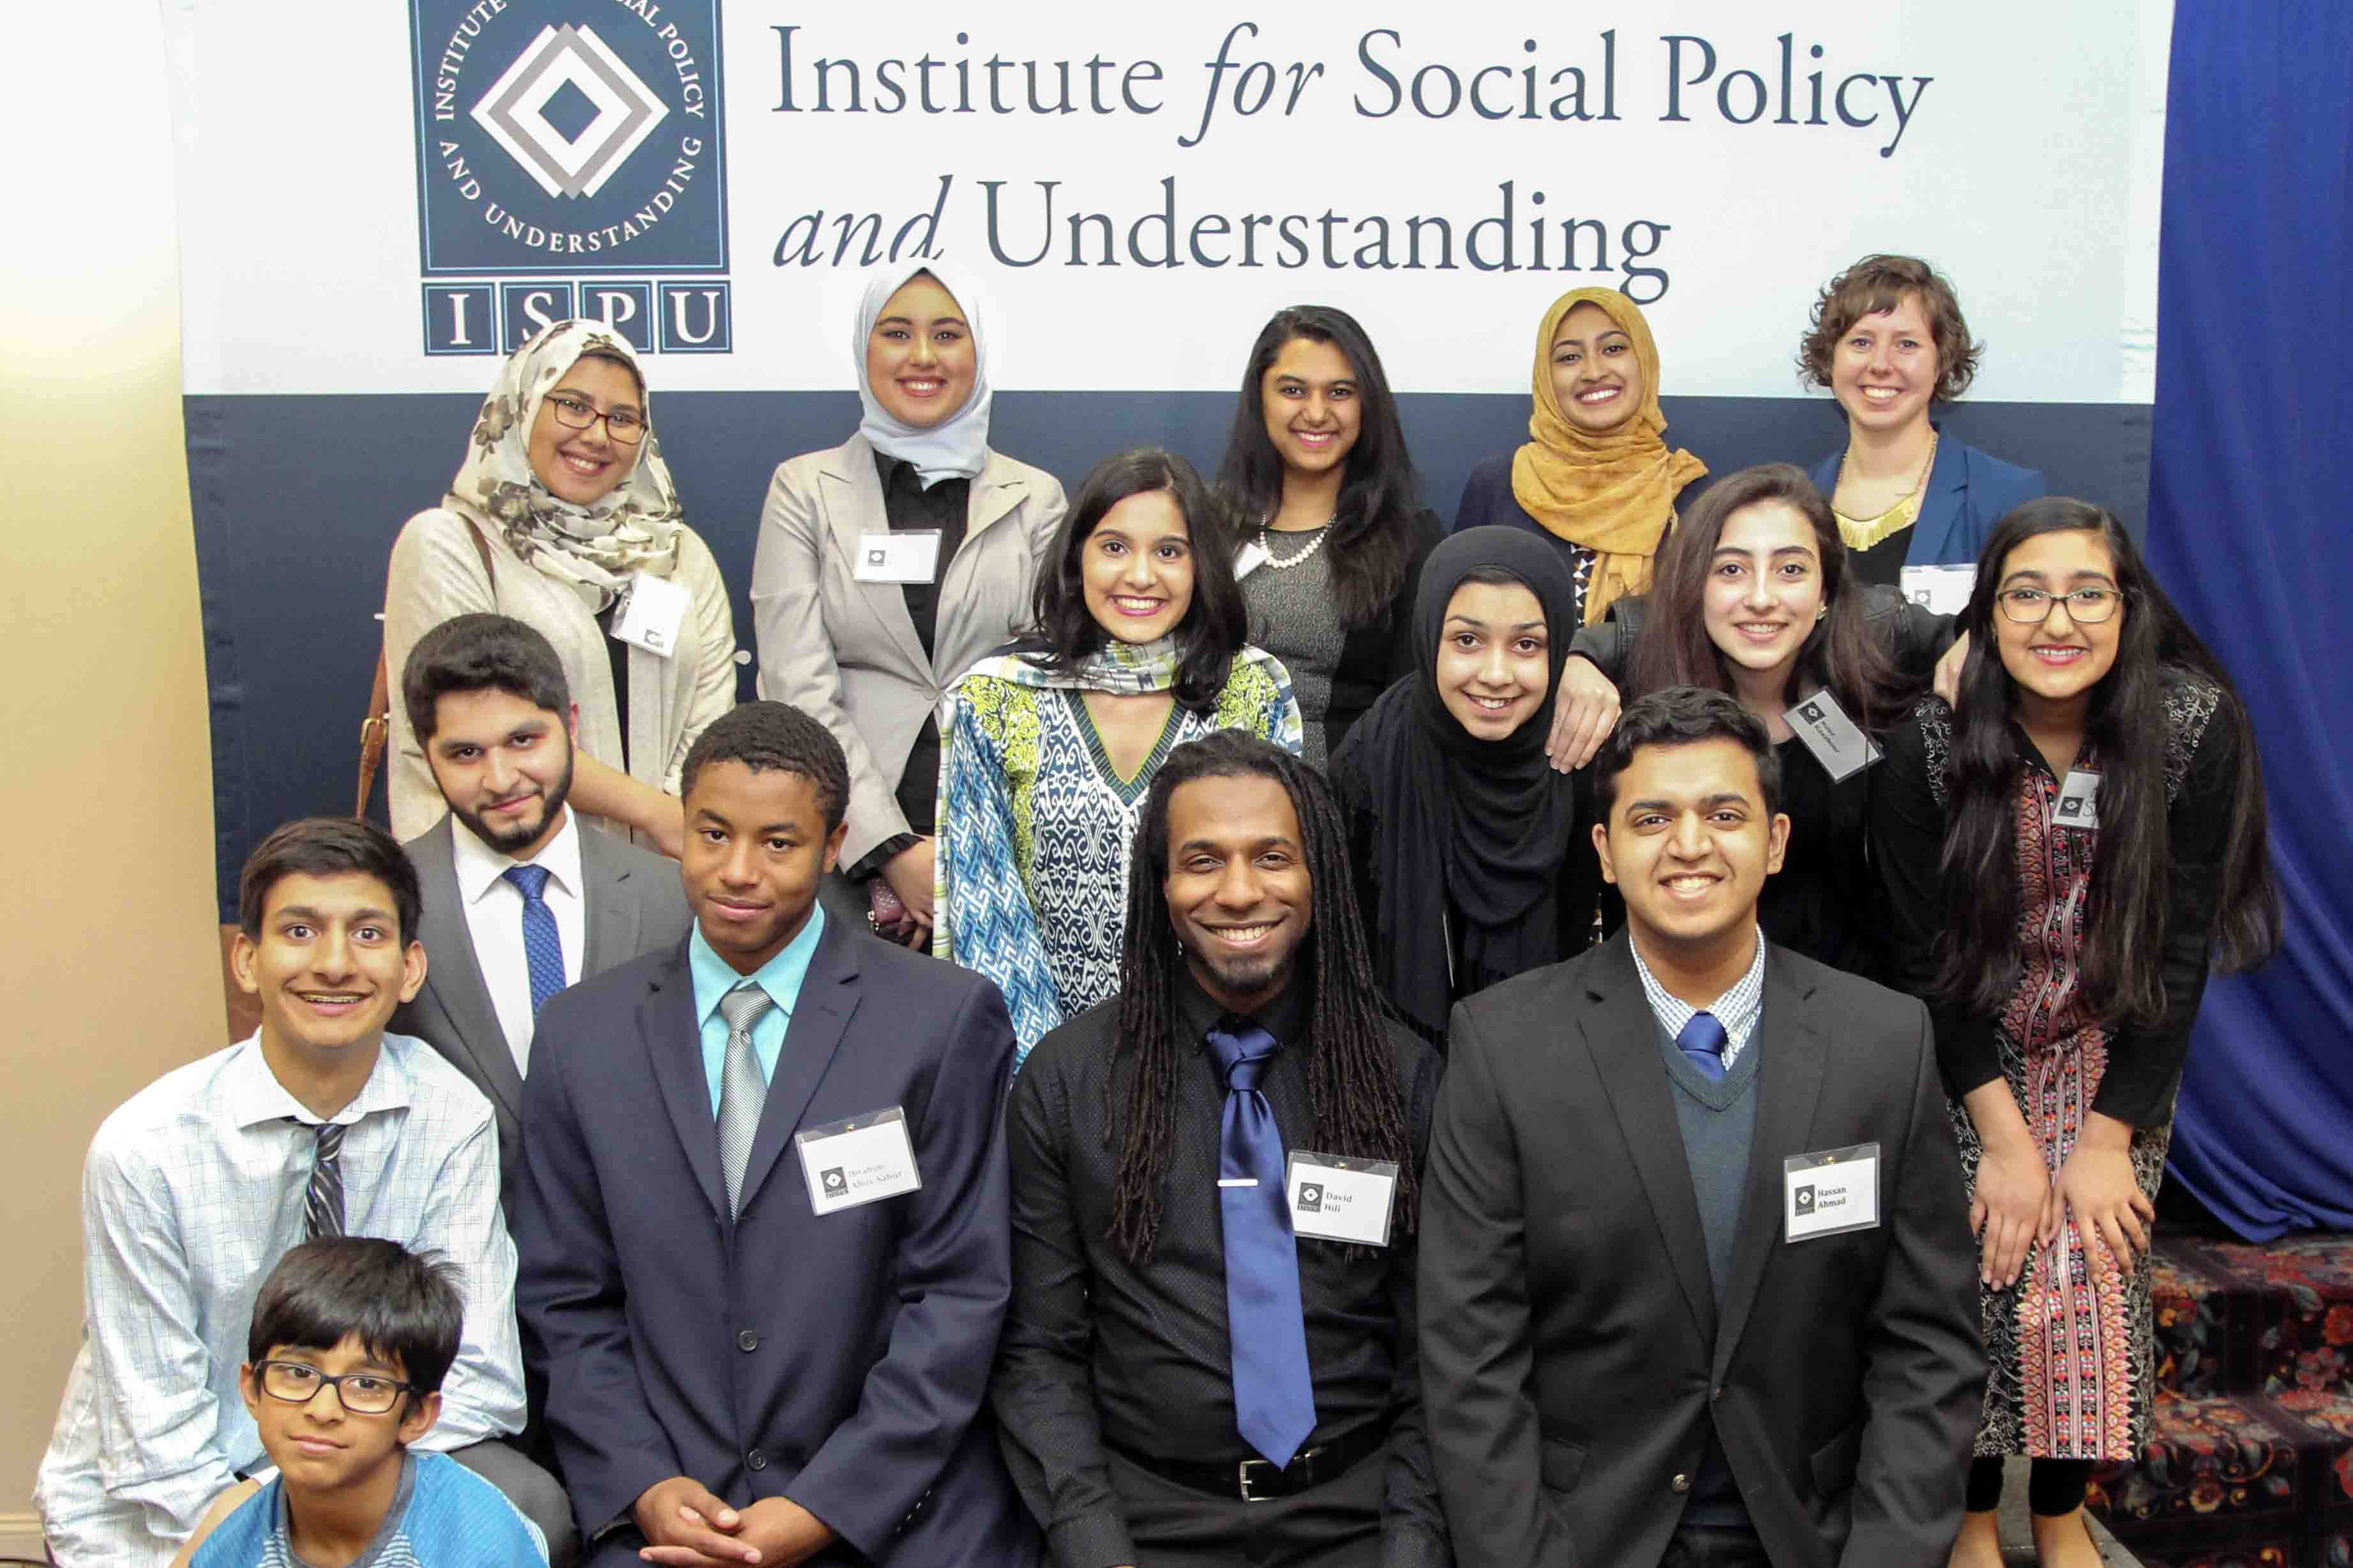 A group of young, well-dressed volunteers at an ISPU event